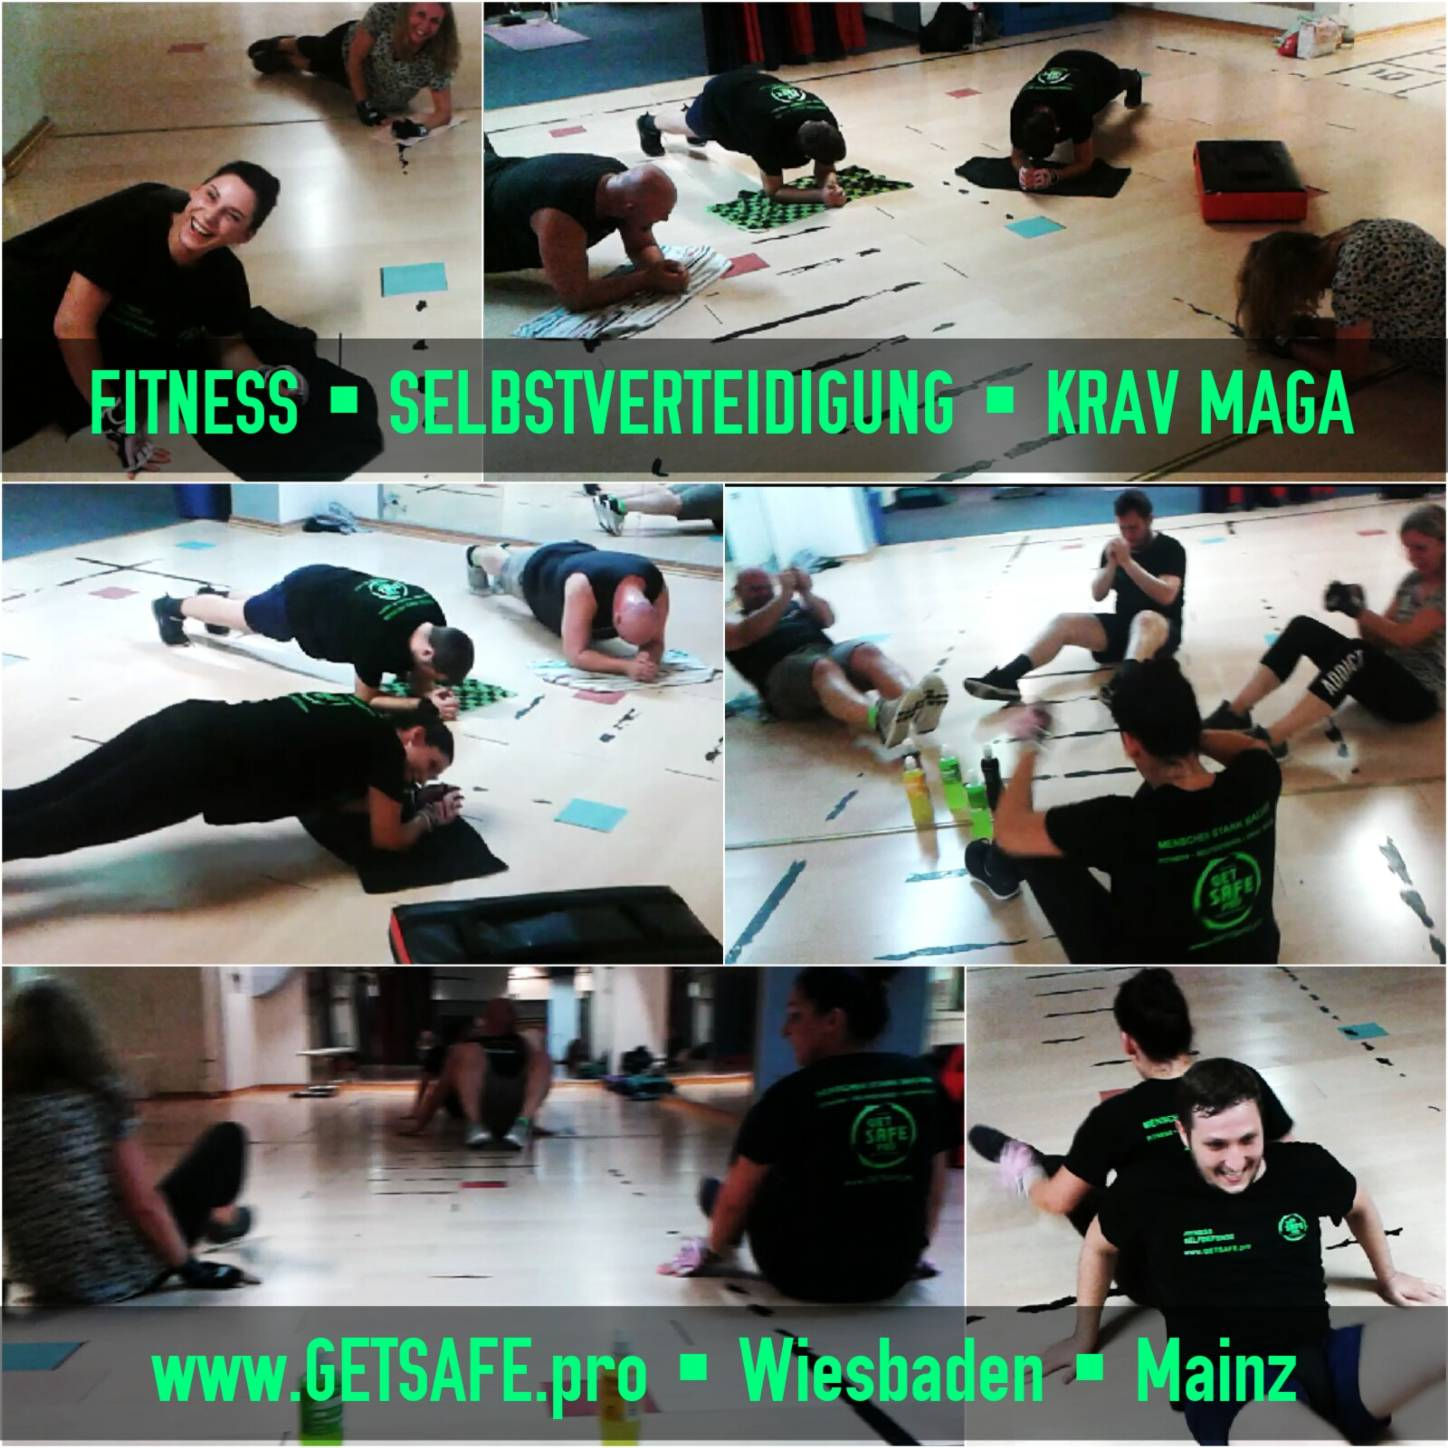 GETSAFEpro Krav Maga Training Mainz Selbstverteidigung Fitness-Center Mainz City (5)